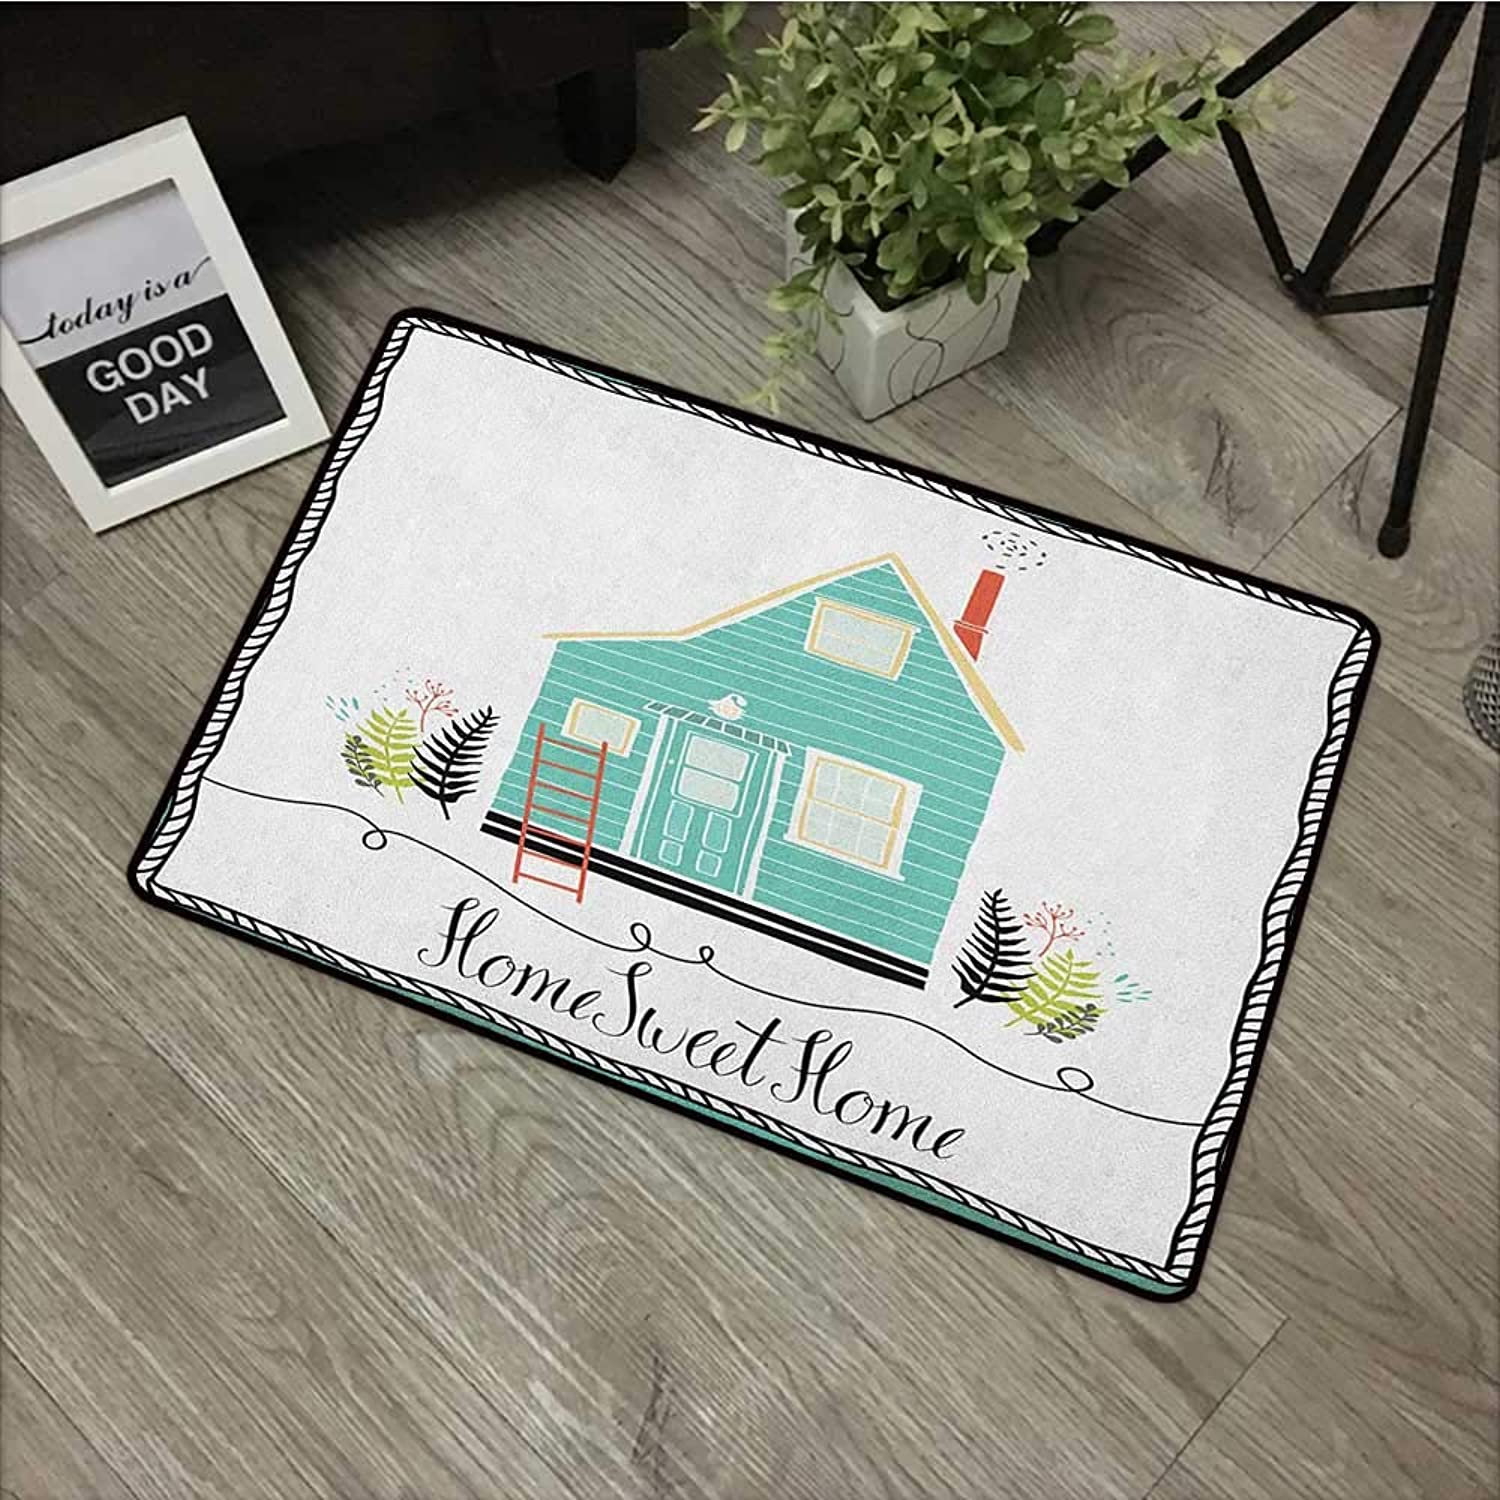 Living Room Door mat W35 x L59 INCH Home Sweet Home,Small House in The Countryside Rustic Theme Fern Leaves Grunge Doodle Frame, Multicolor Non-Slip Door Mat Carpet